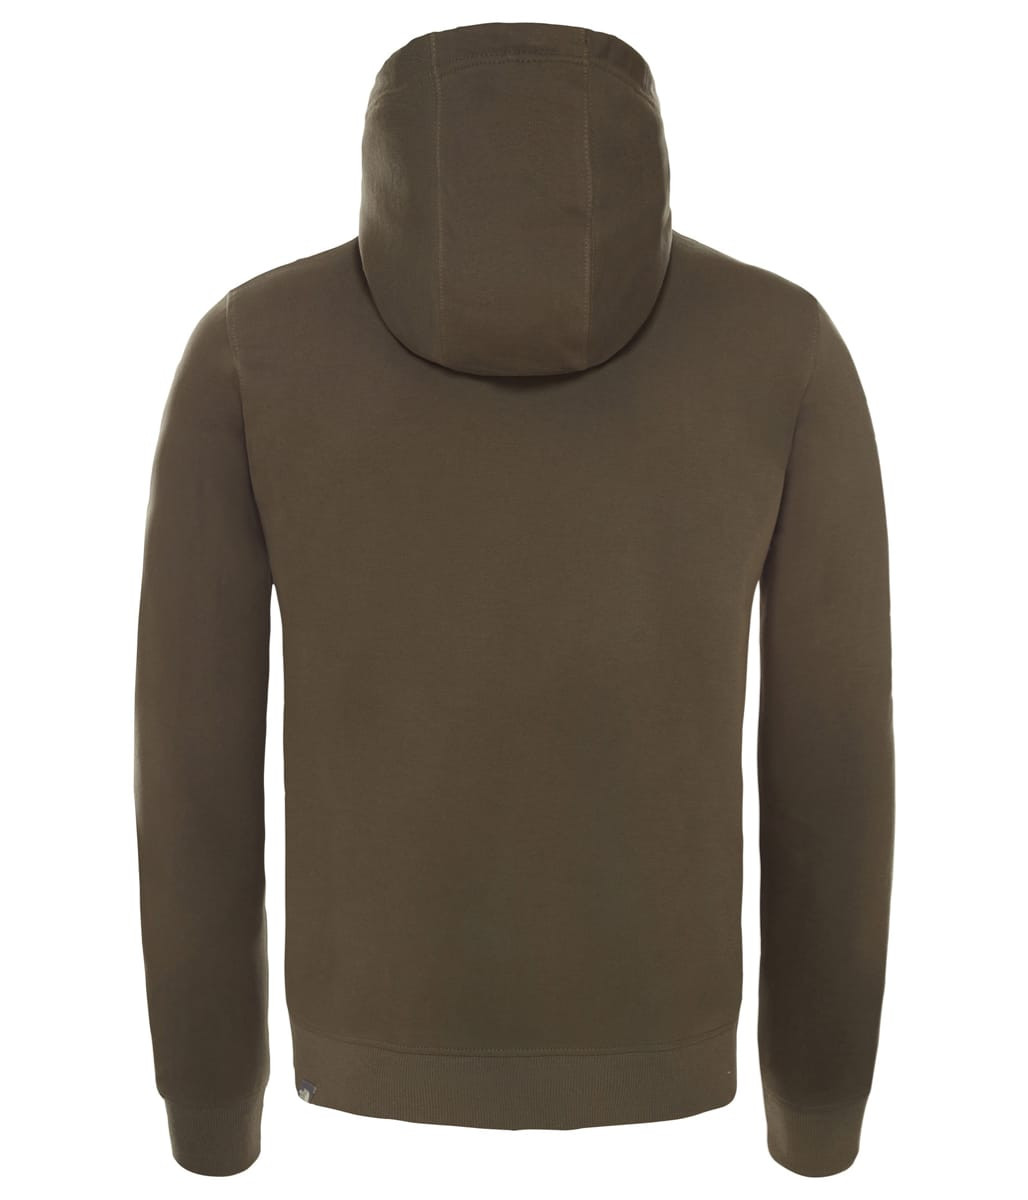 f5b37d29 The North Face Men's Light Drew Peak Pullover Hoodie New Taupe Green ...